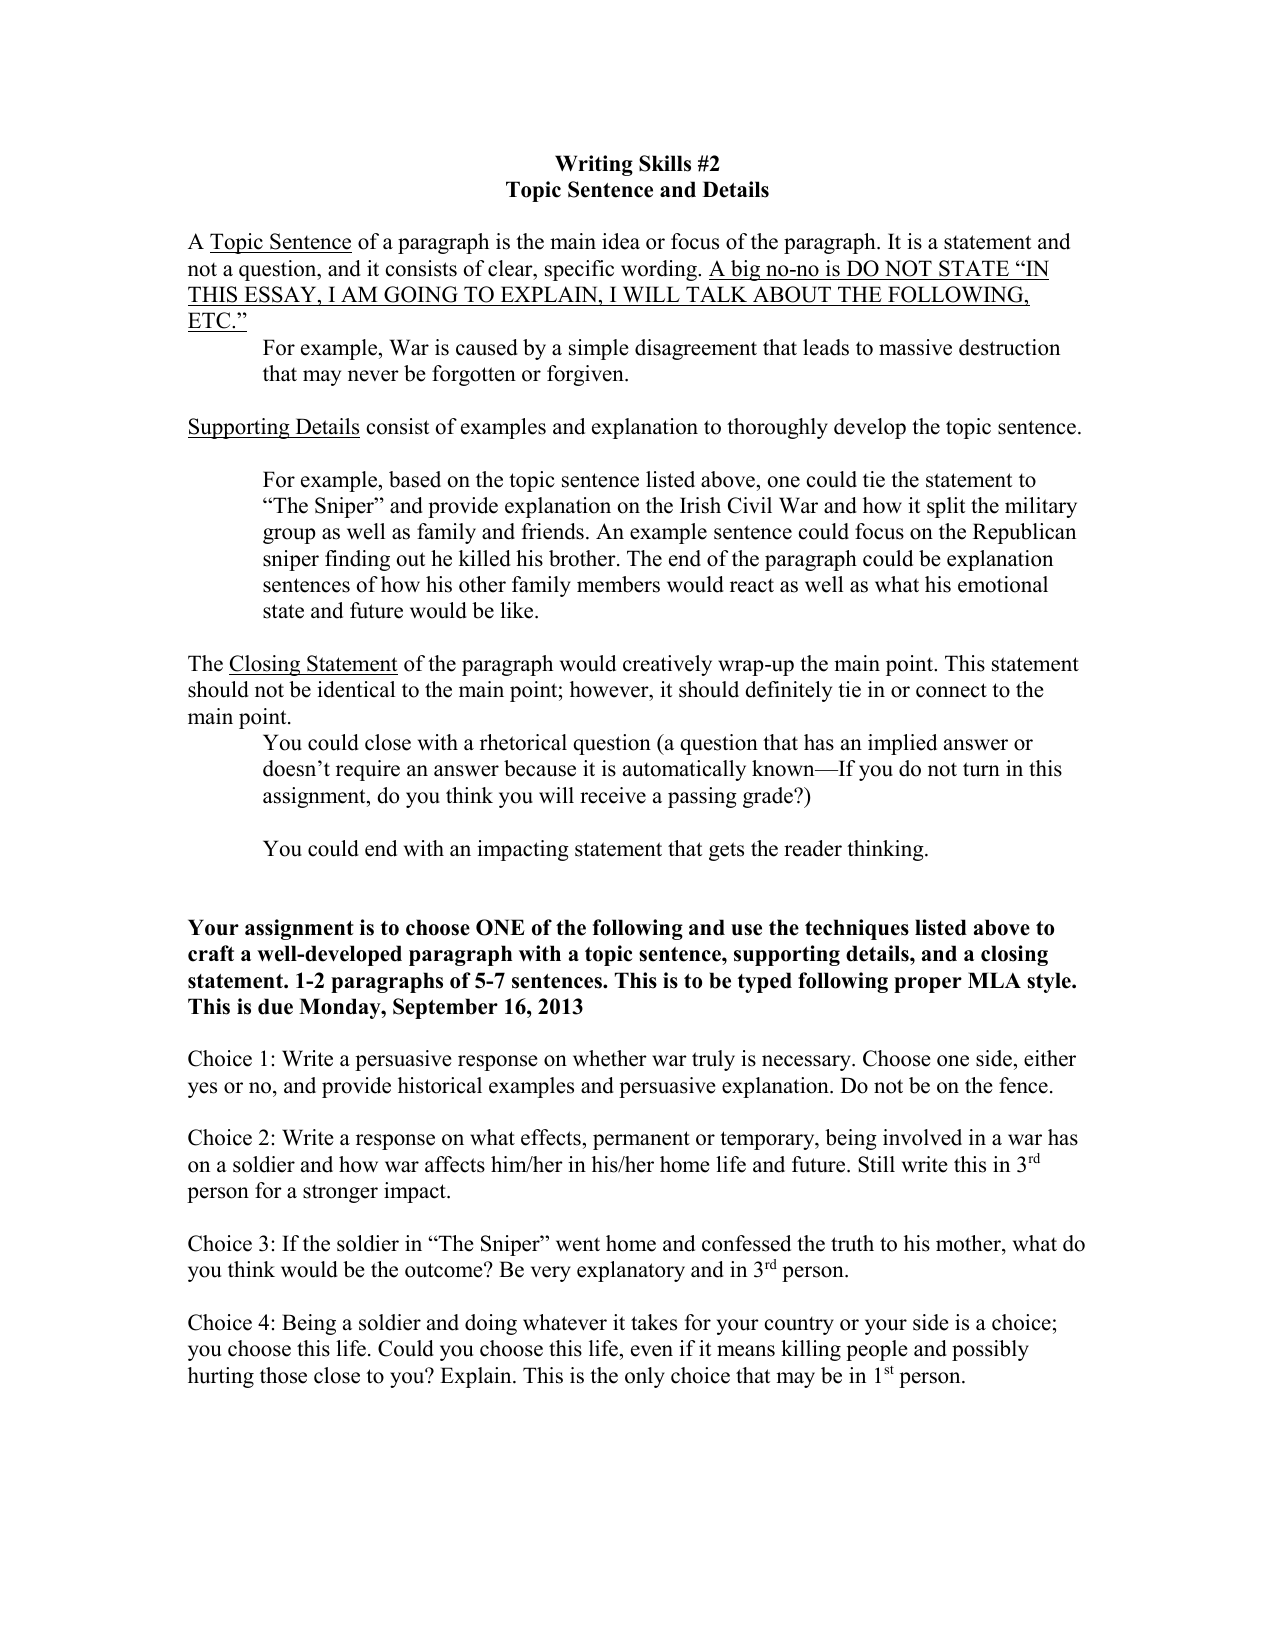 Science Fiction Essay The Sniper Writing Topics Interview Essay Paper also Persuasive Essay Thesis Statement The Sniper Writing Topics Fahrenheit 451 Essay Thesis